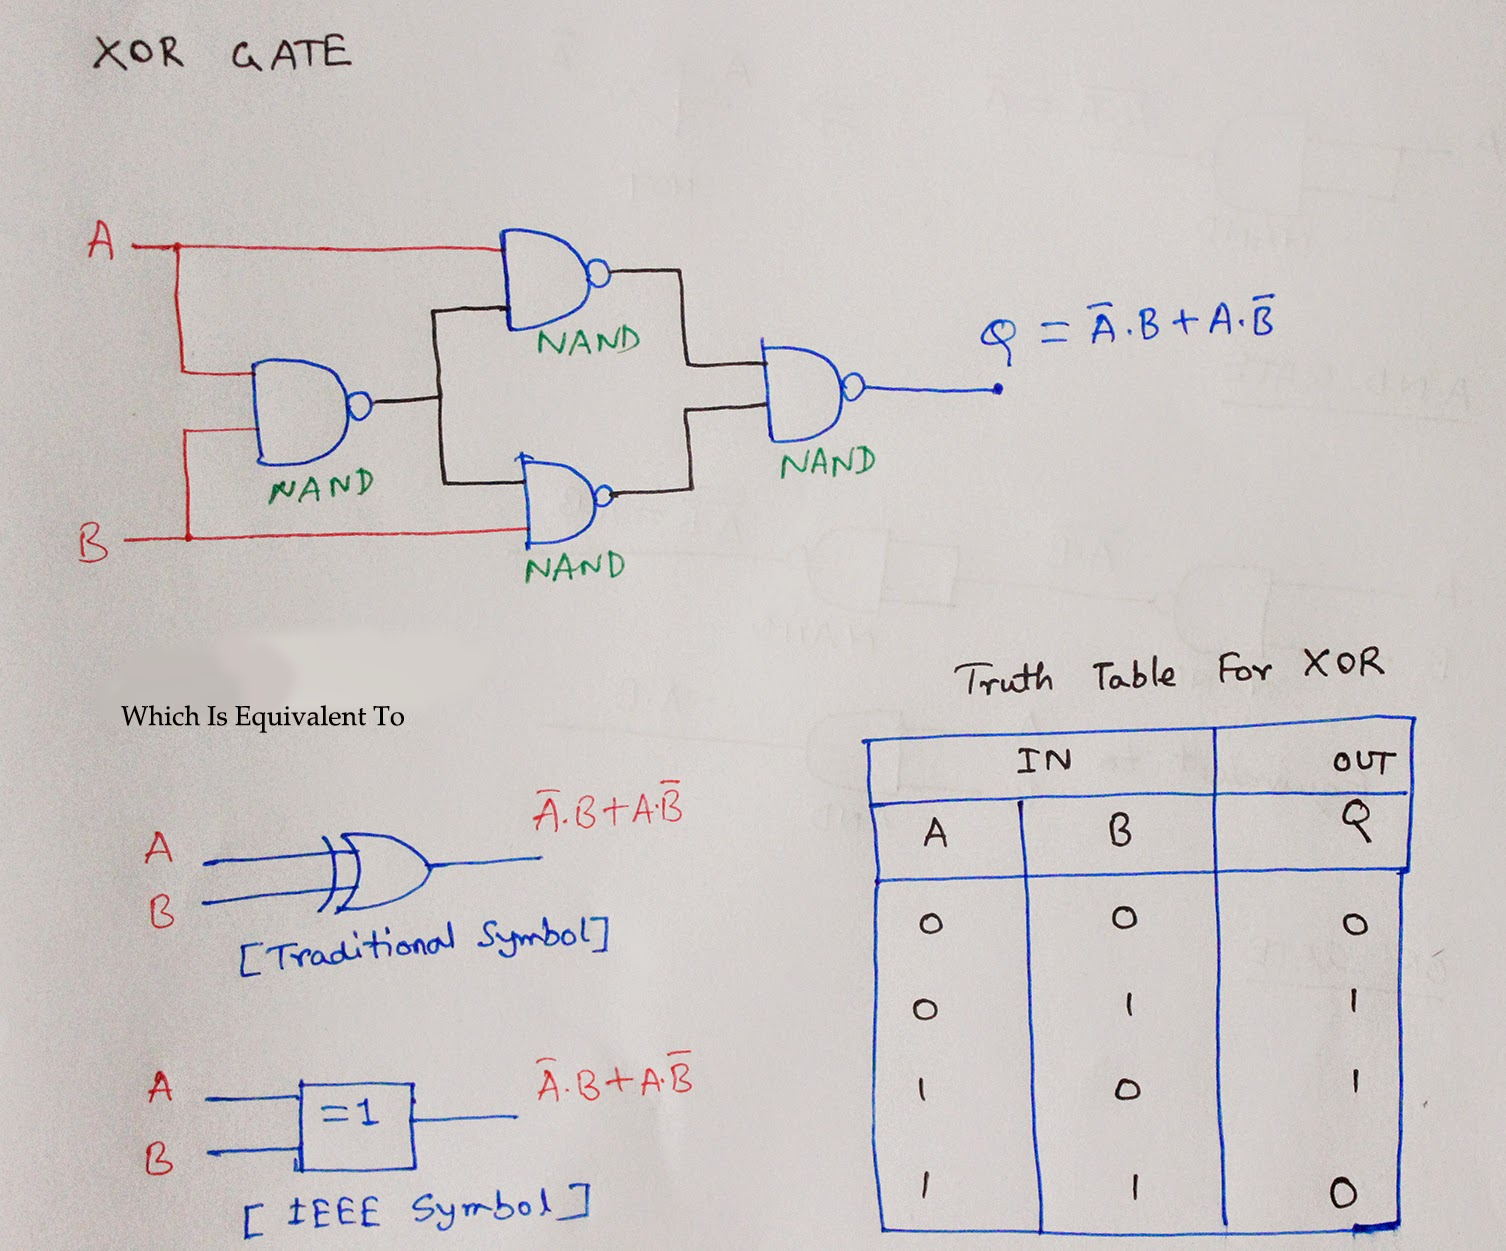 Scavengers blog nand gate xor gate using nand gate ccuart Image collections